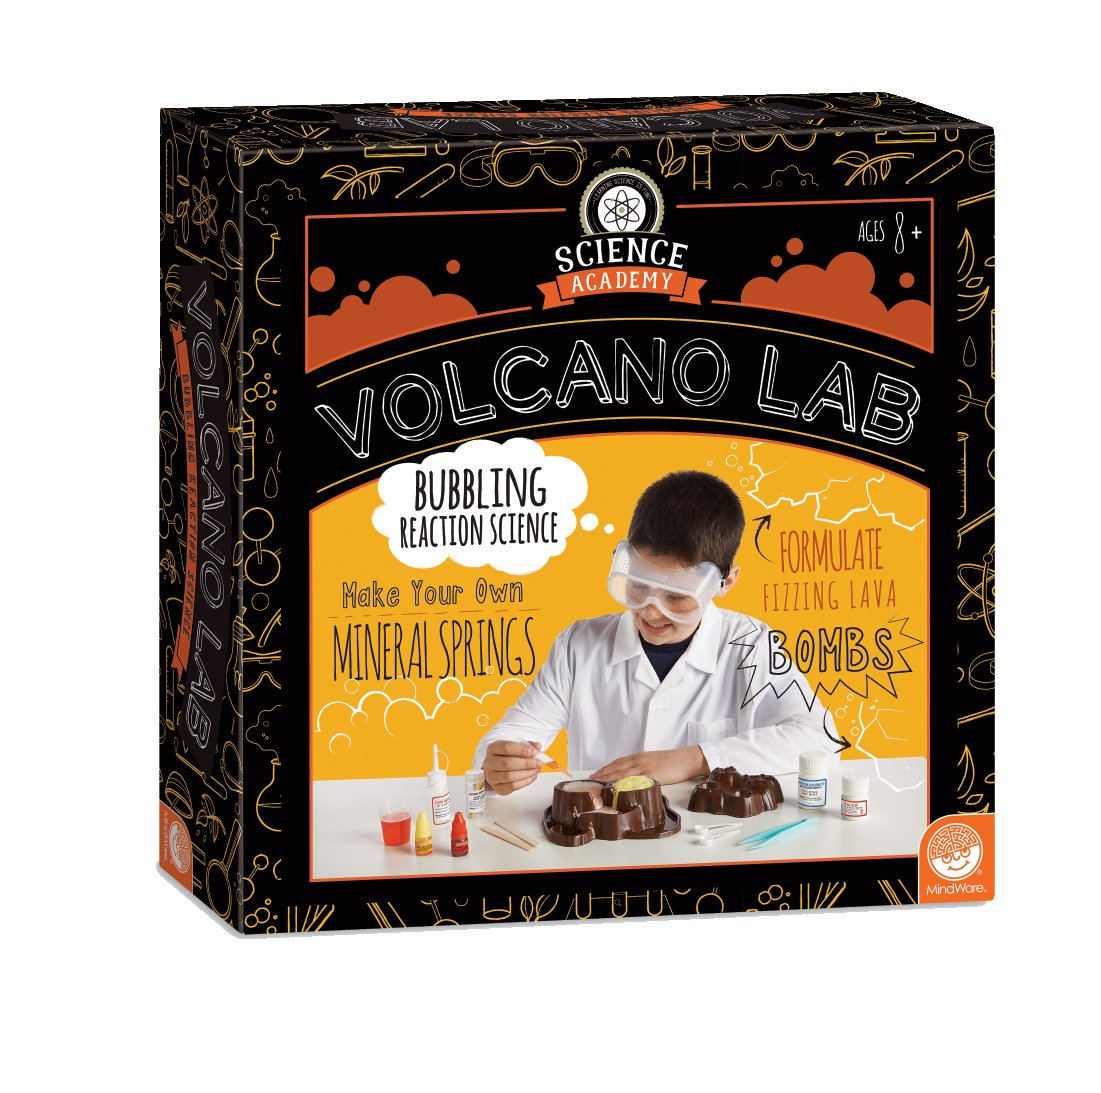 discovery glowing volcano instructions